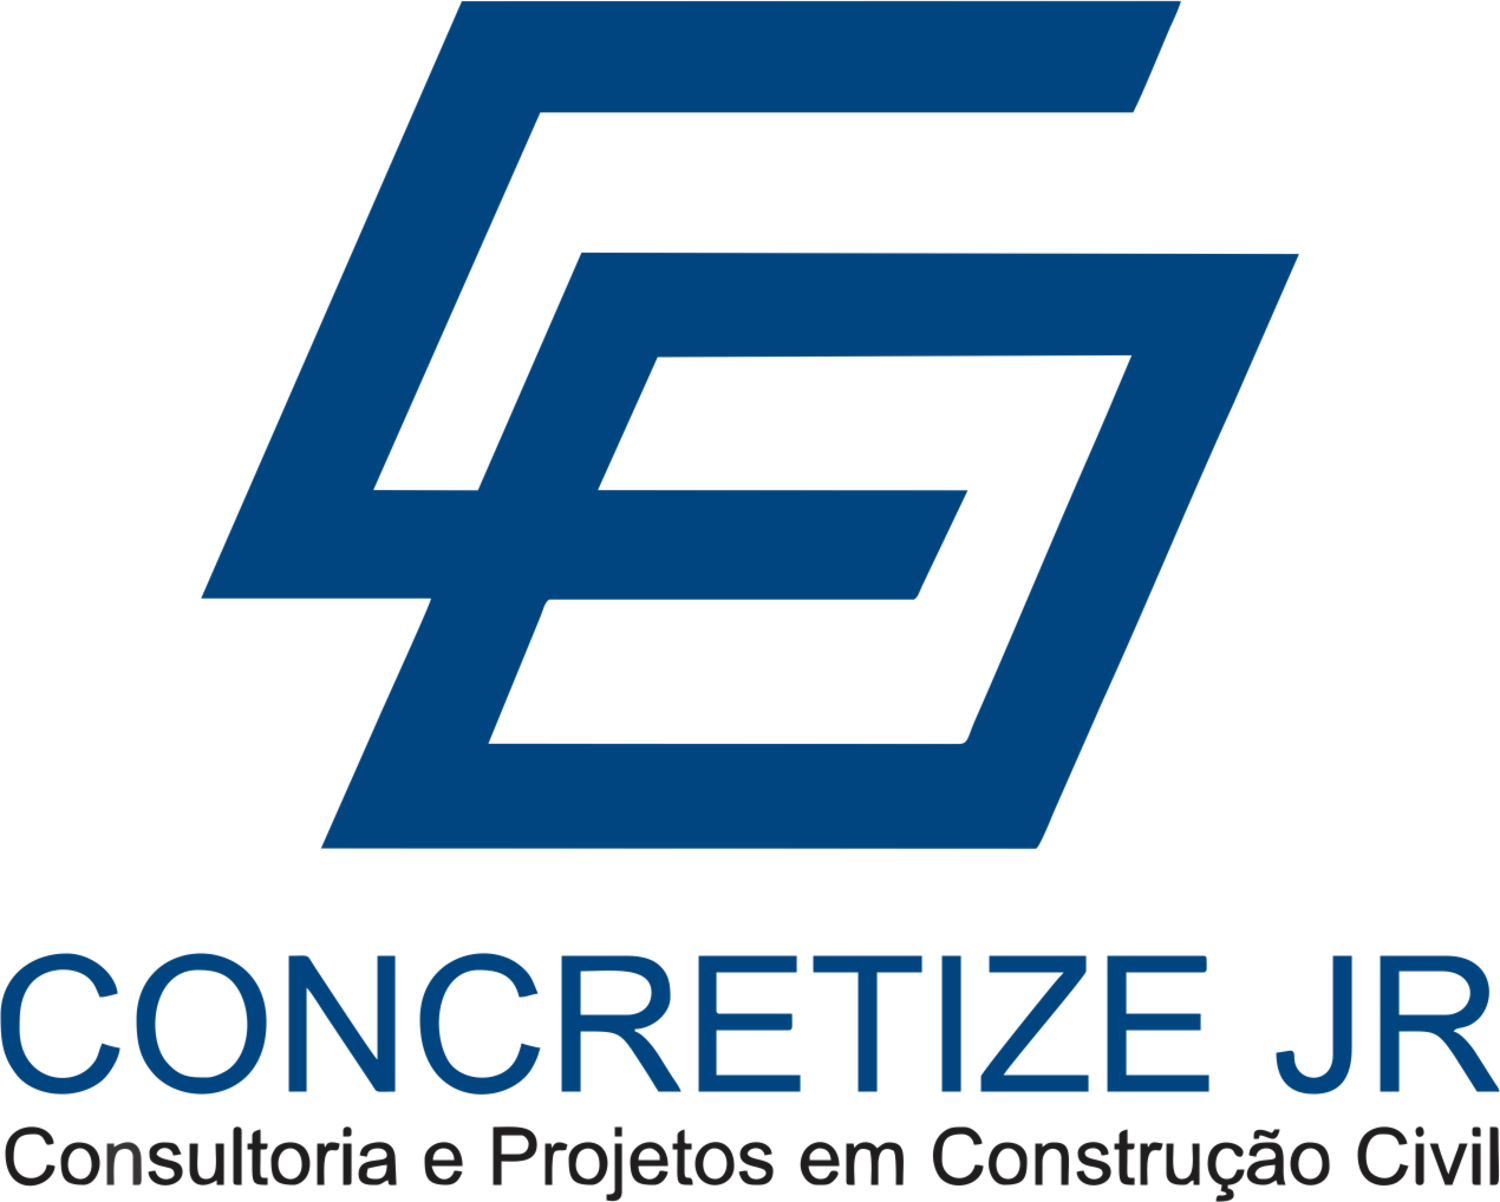 Concretize Jr